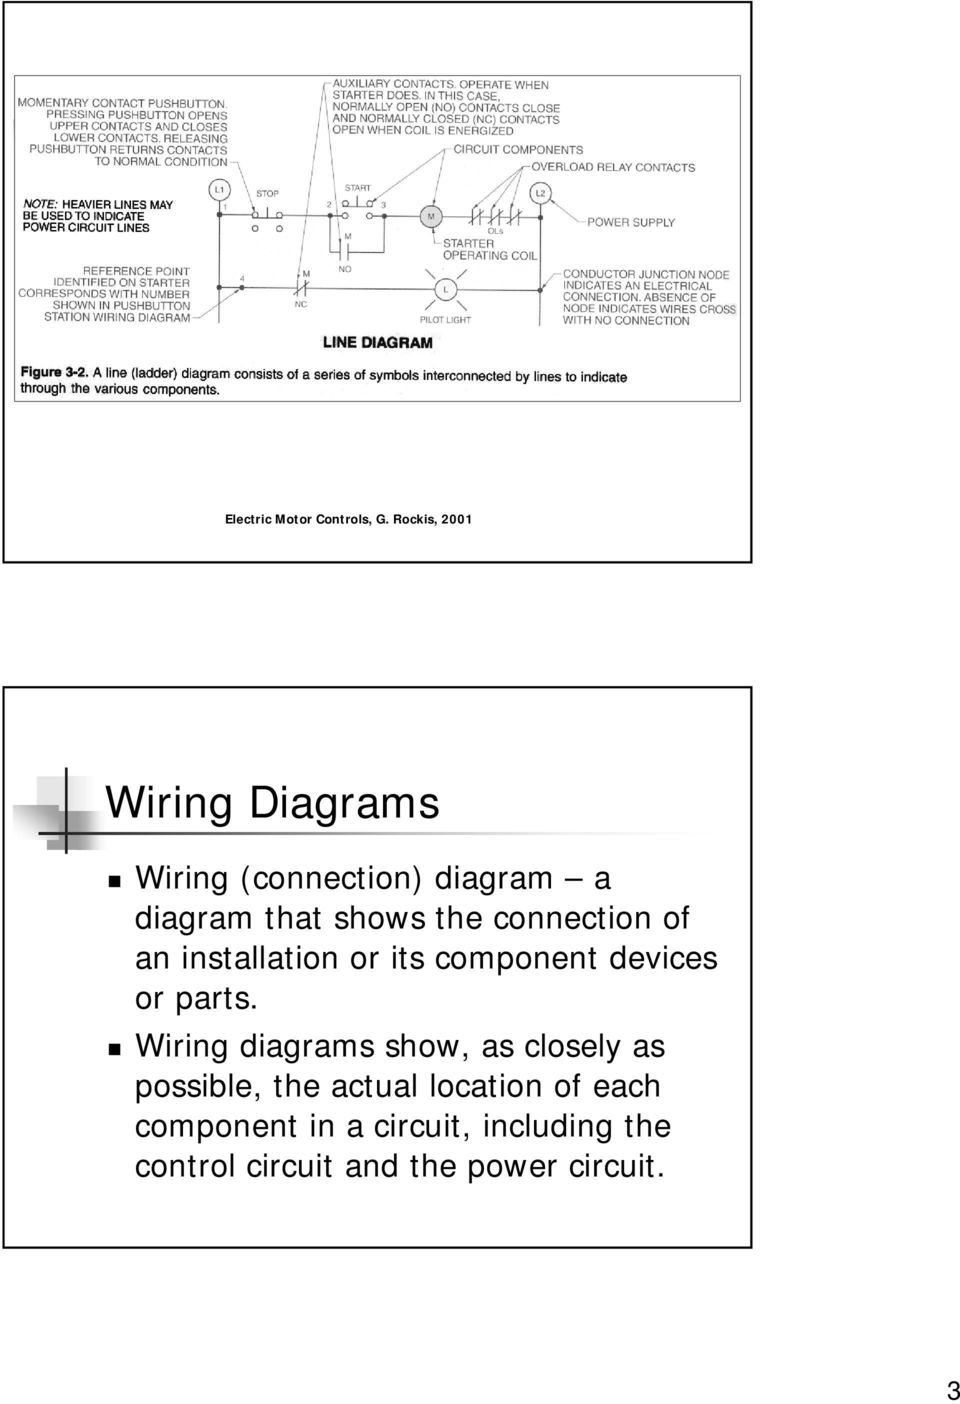 hight resolution of wiring diagrams show as closely as possible the actual location of